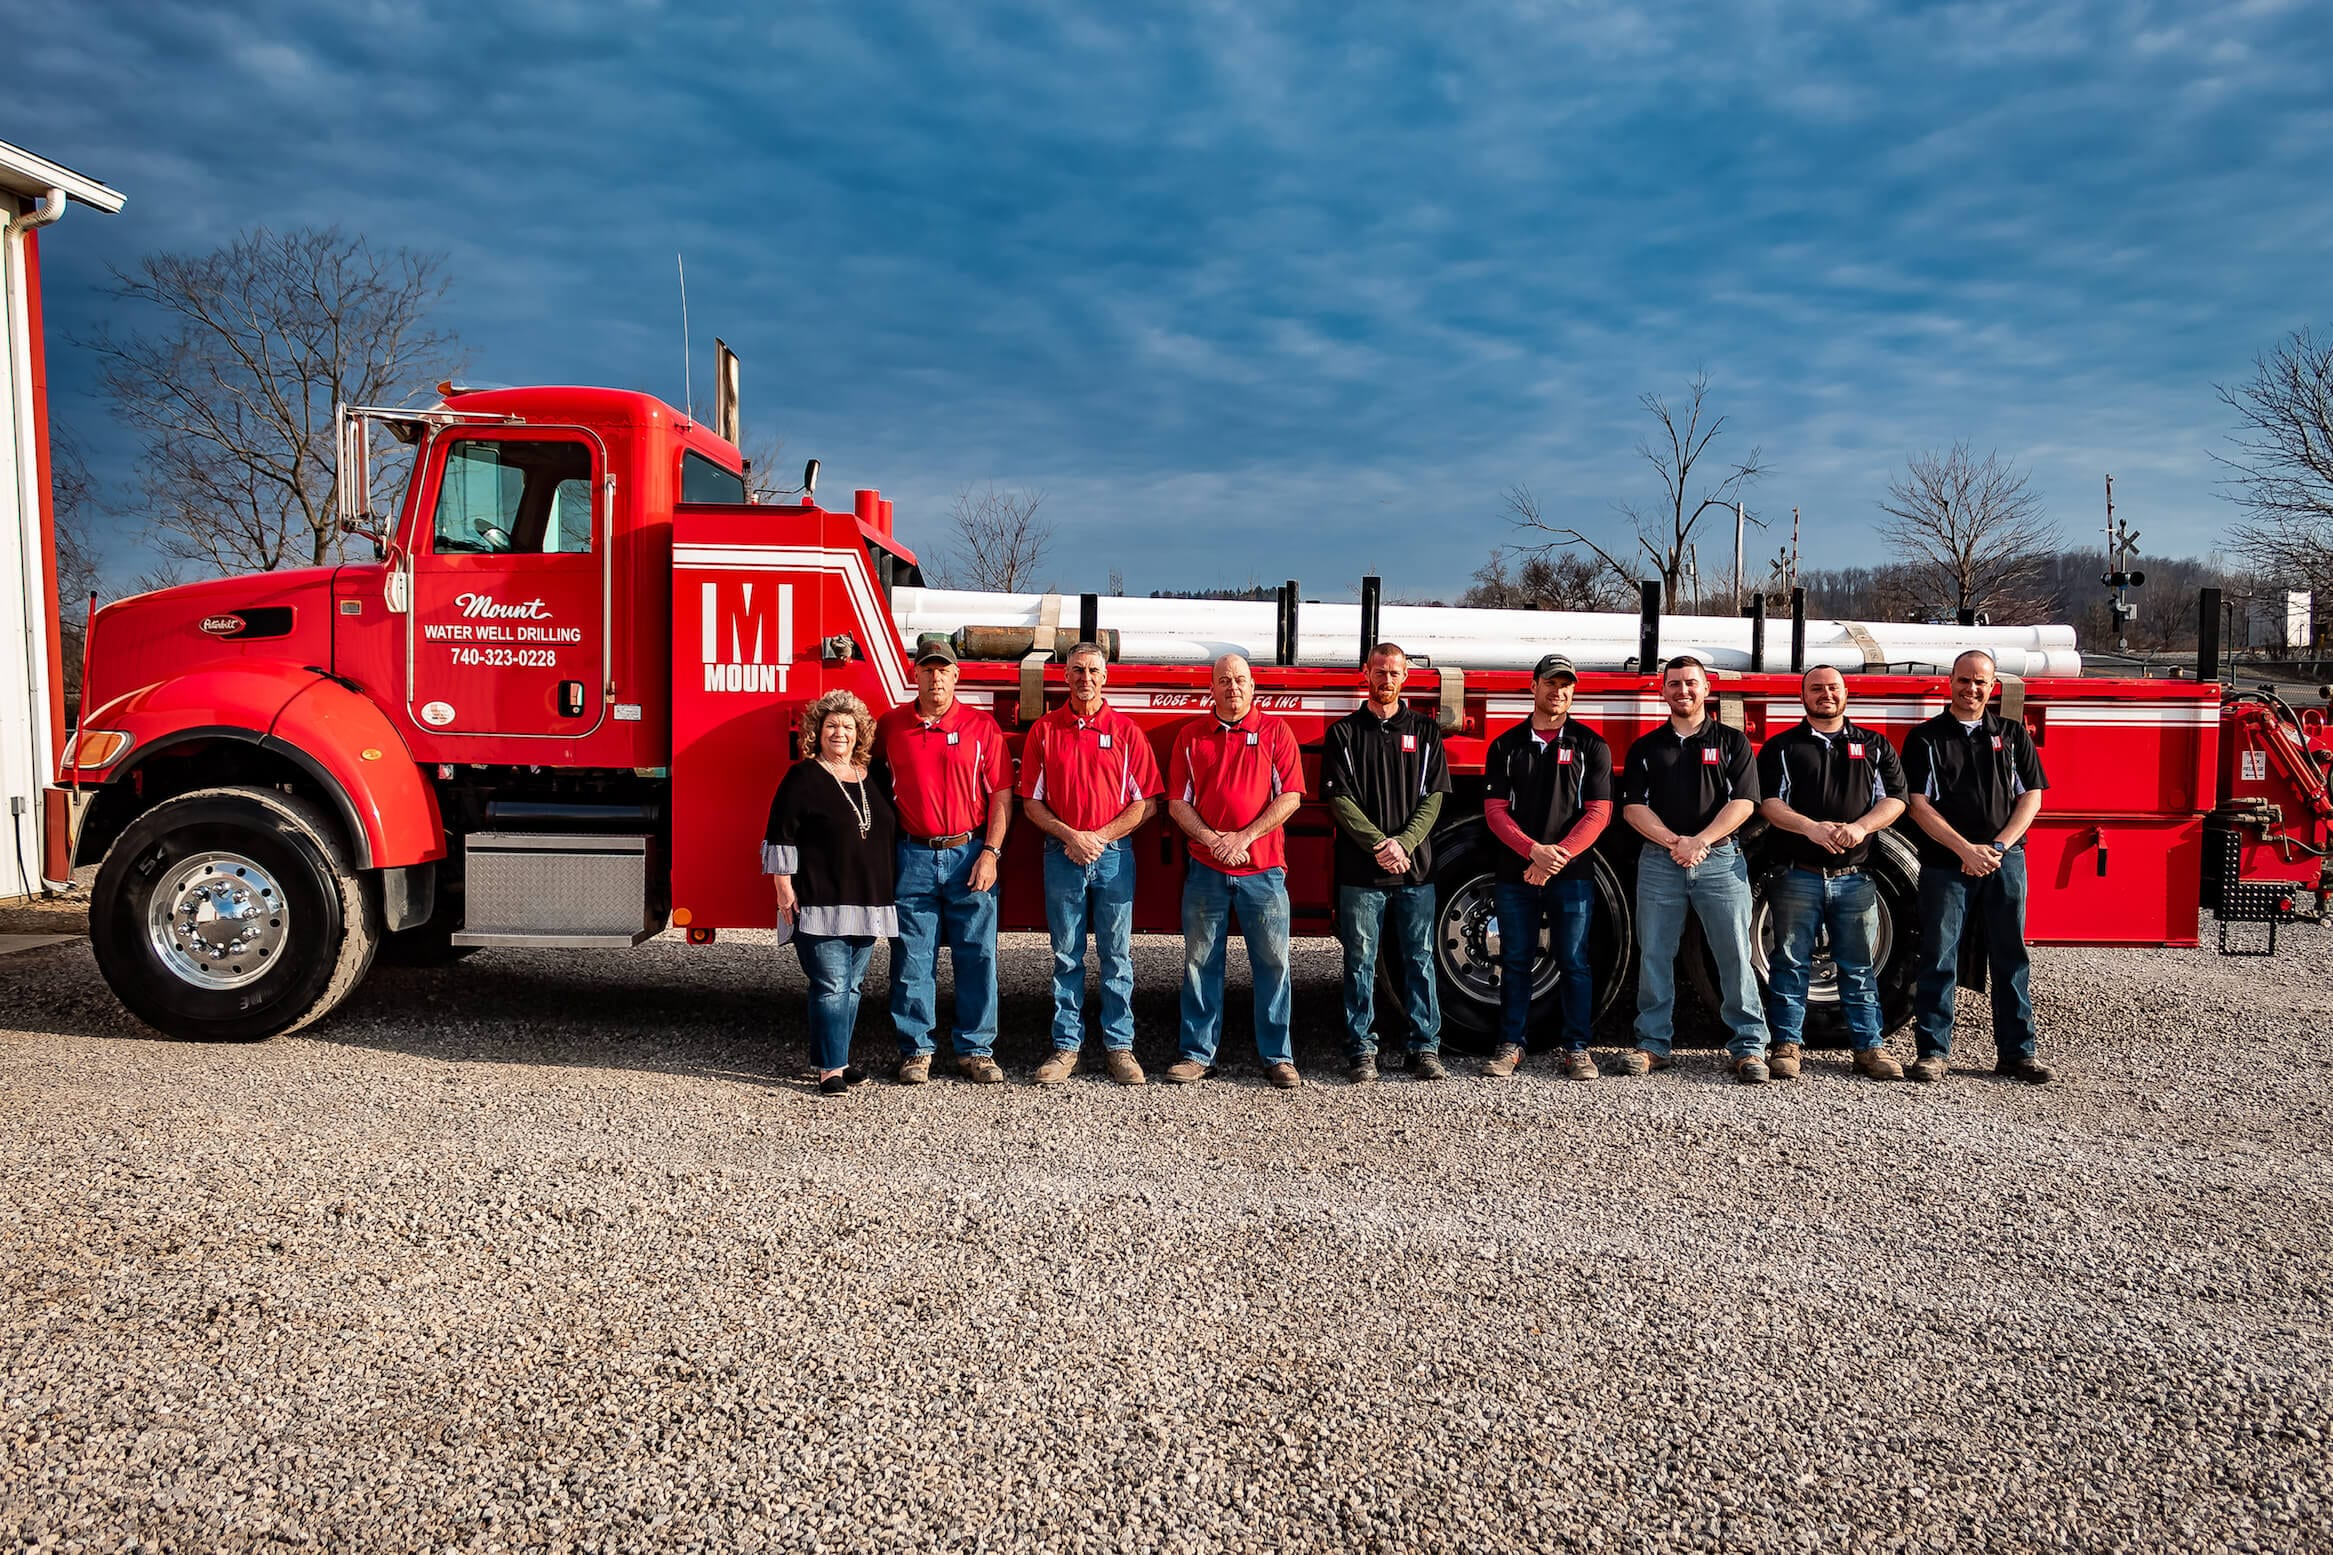 Mount Drilling and Water Treatment Staff 1